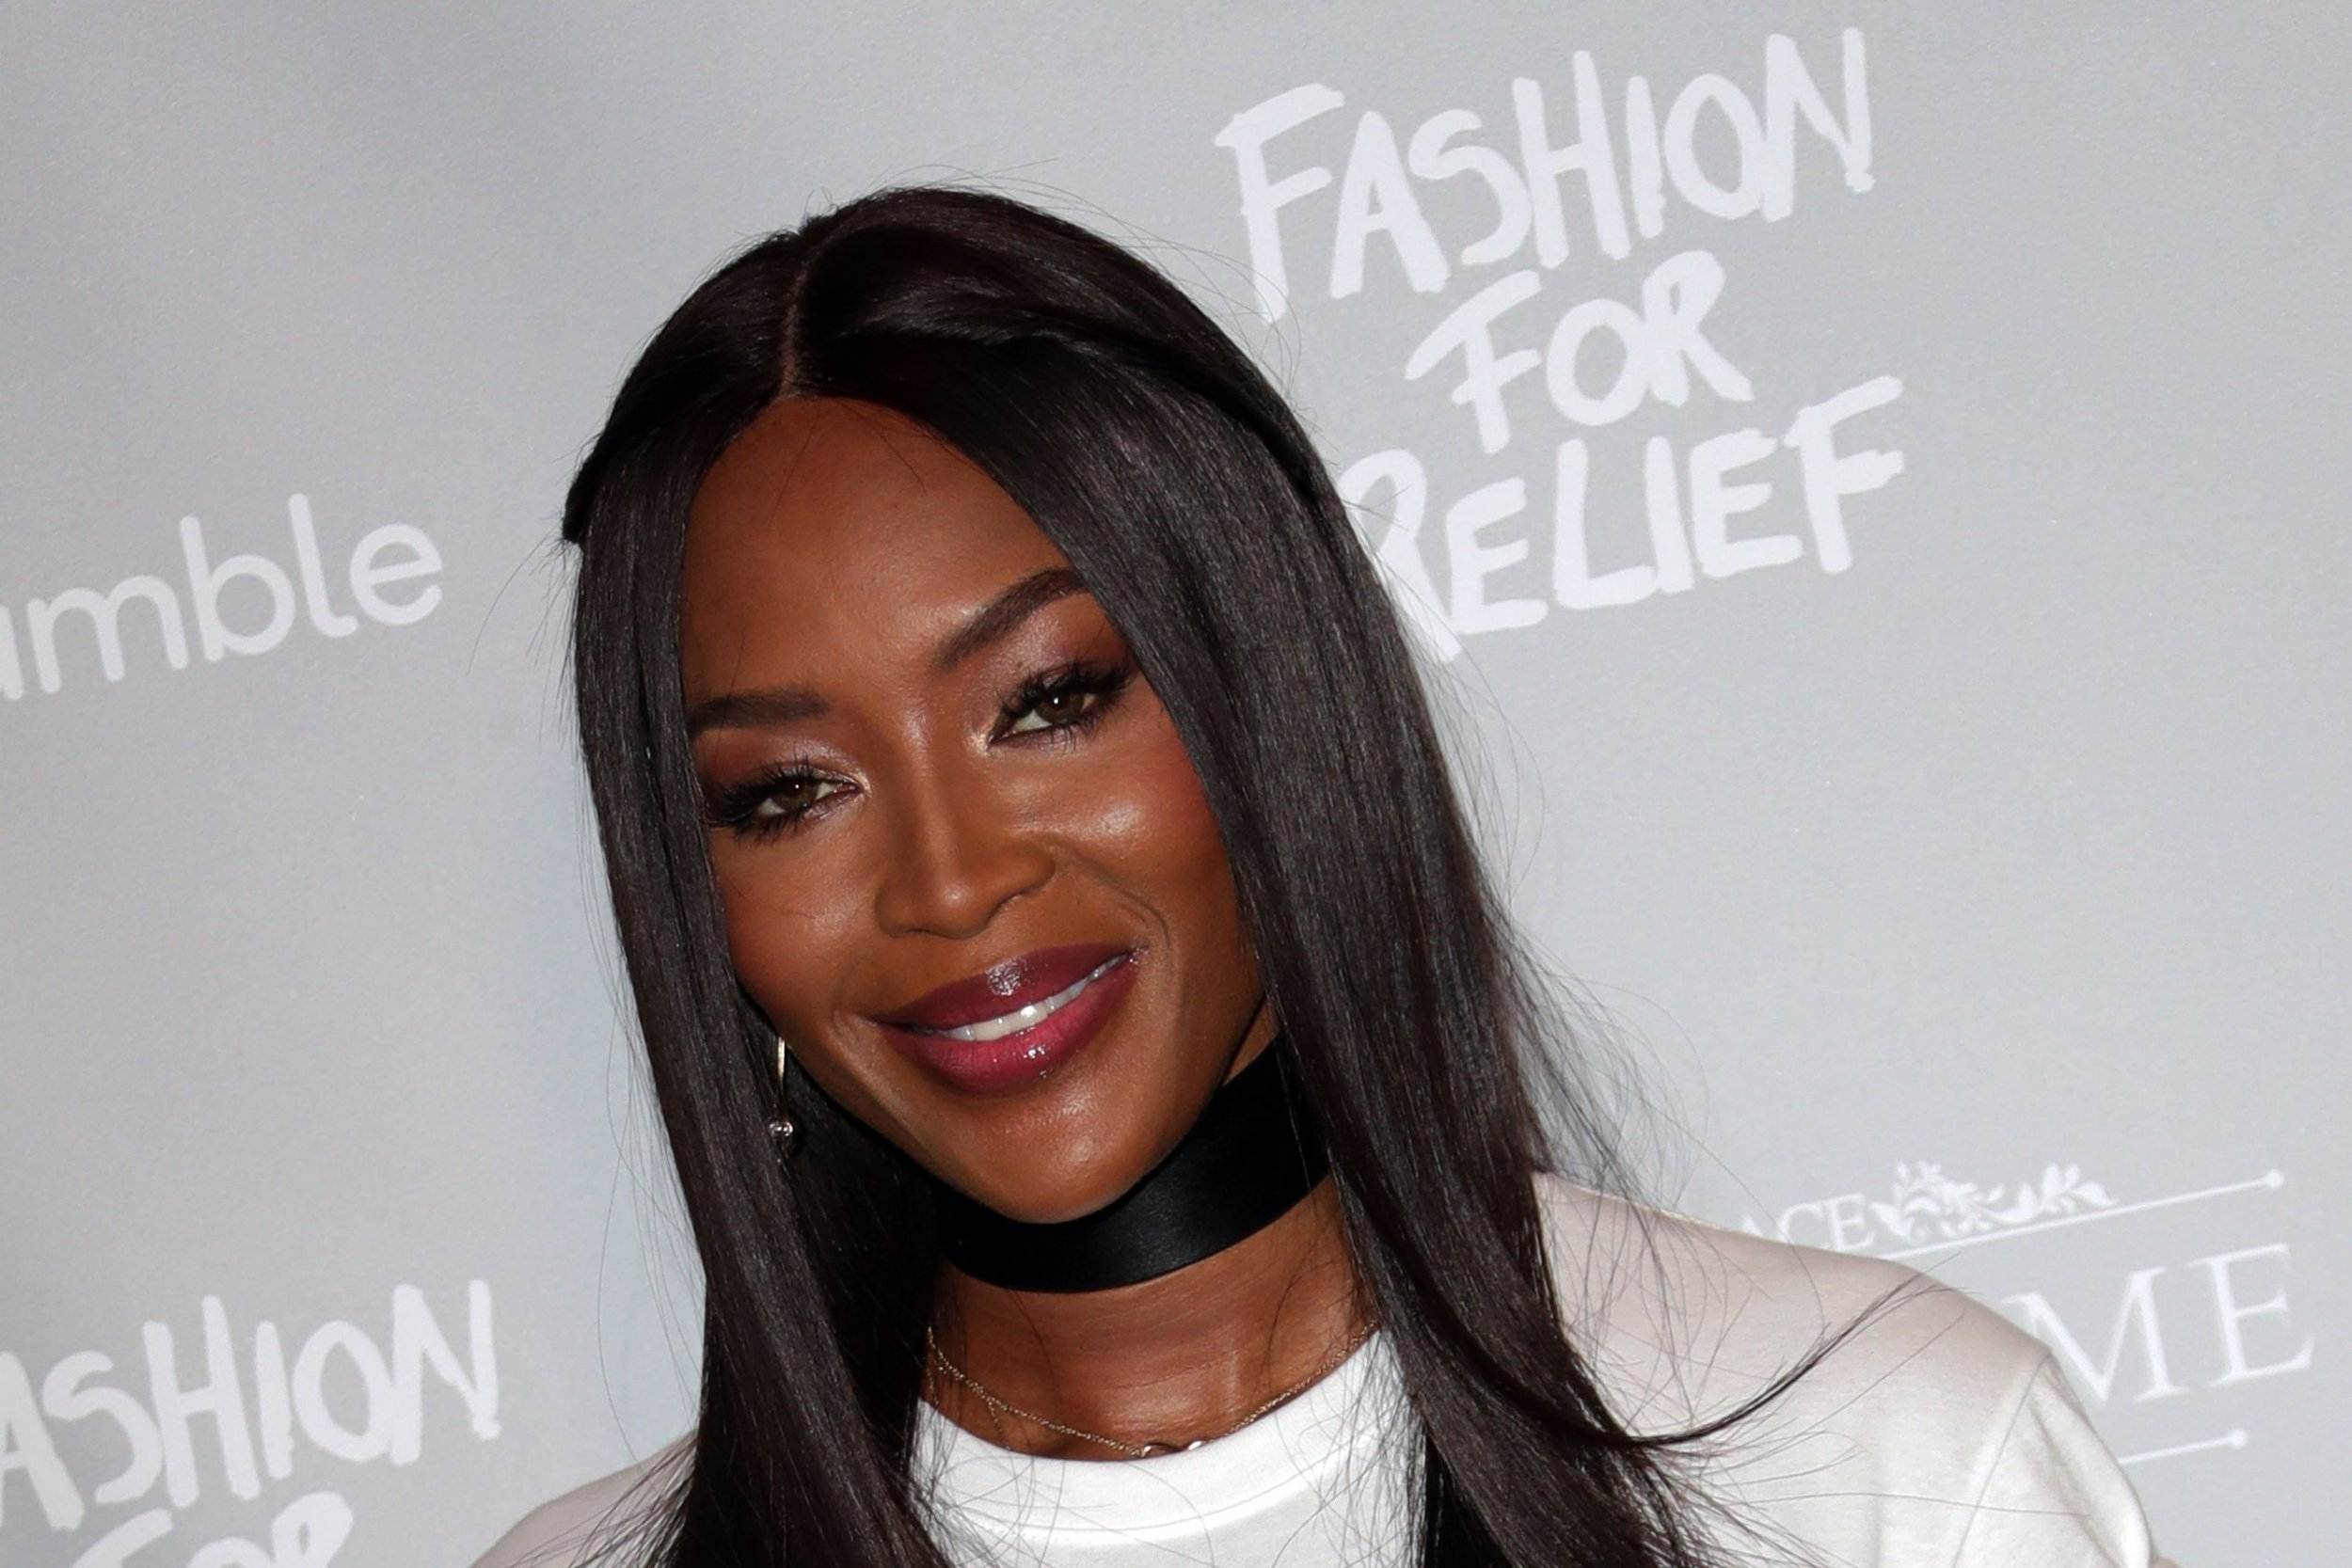 Naomi Campbell turns up 68 minutes late and calls out journalist in what's another day for Naomi Campbell